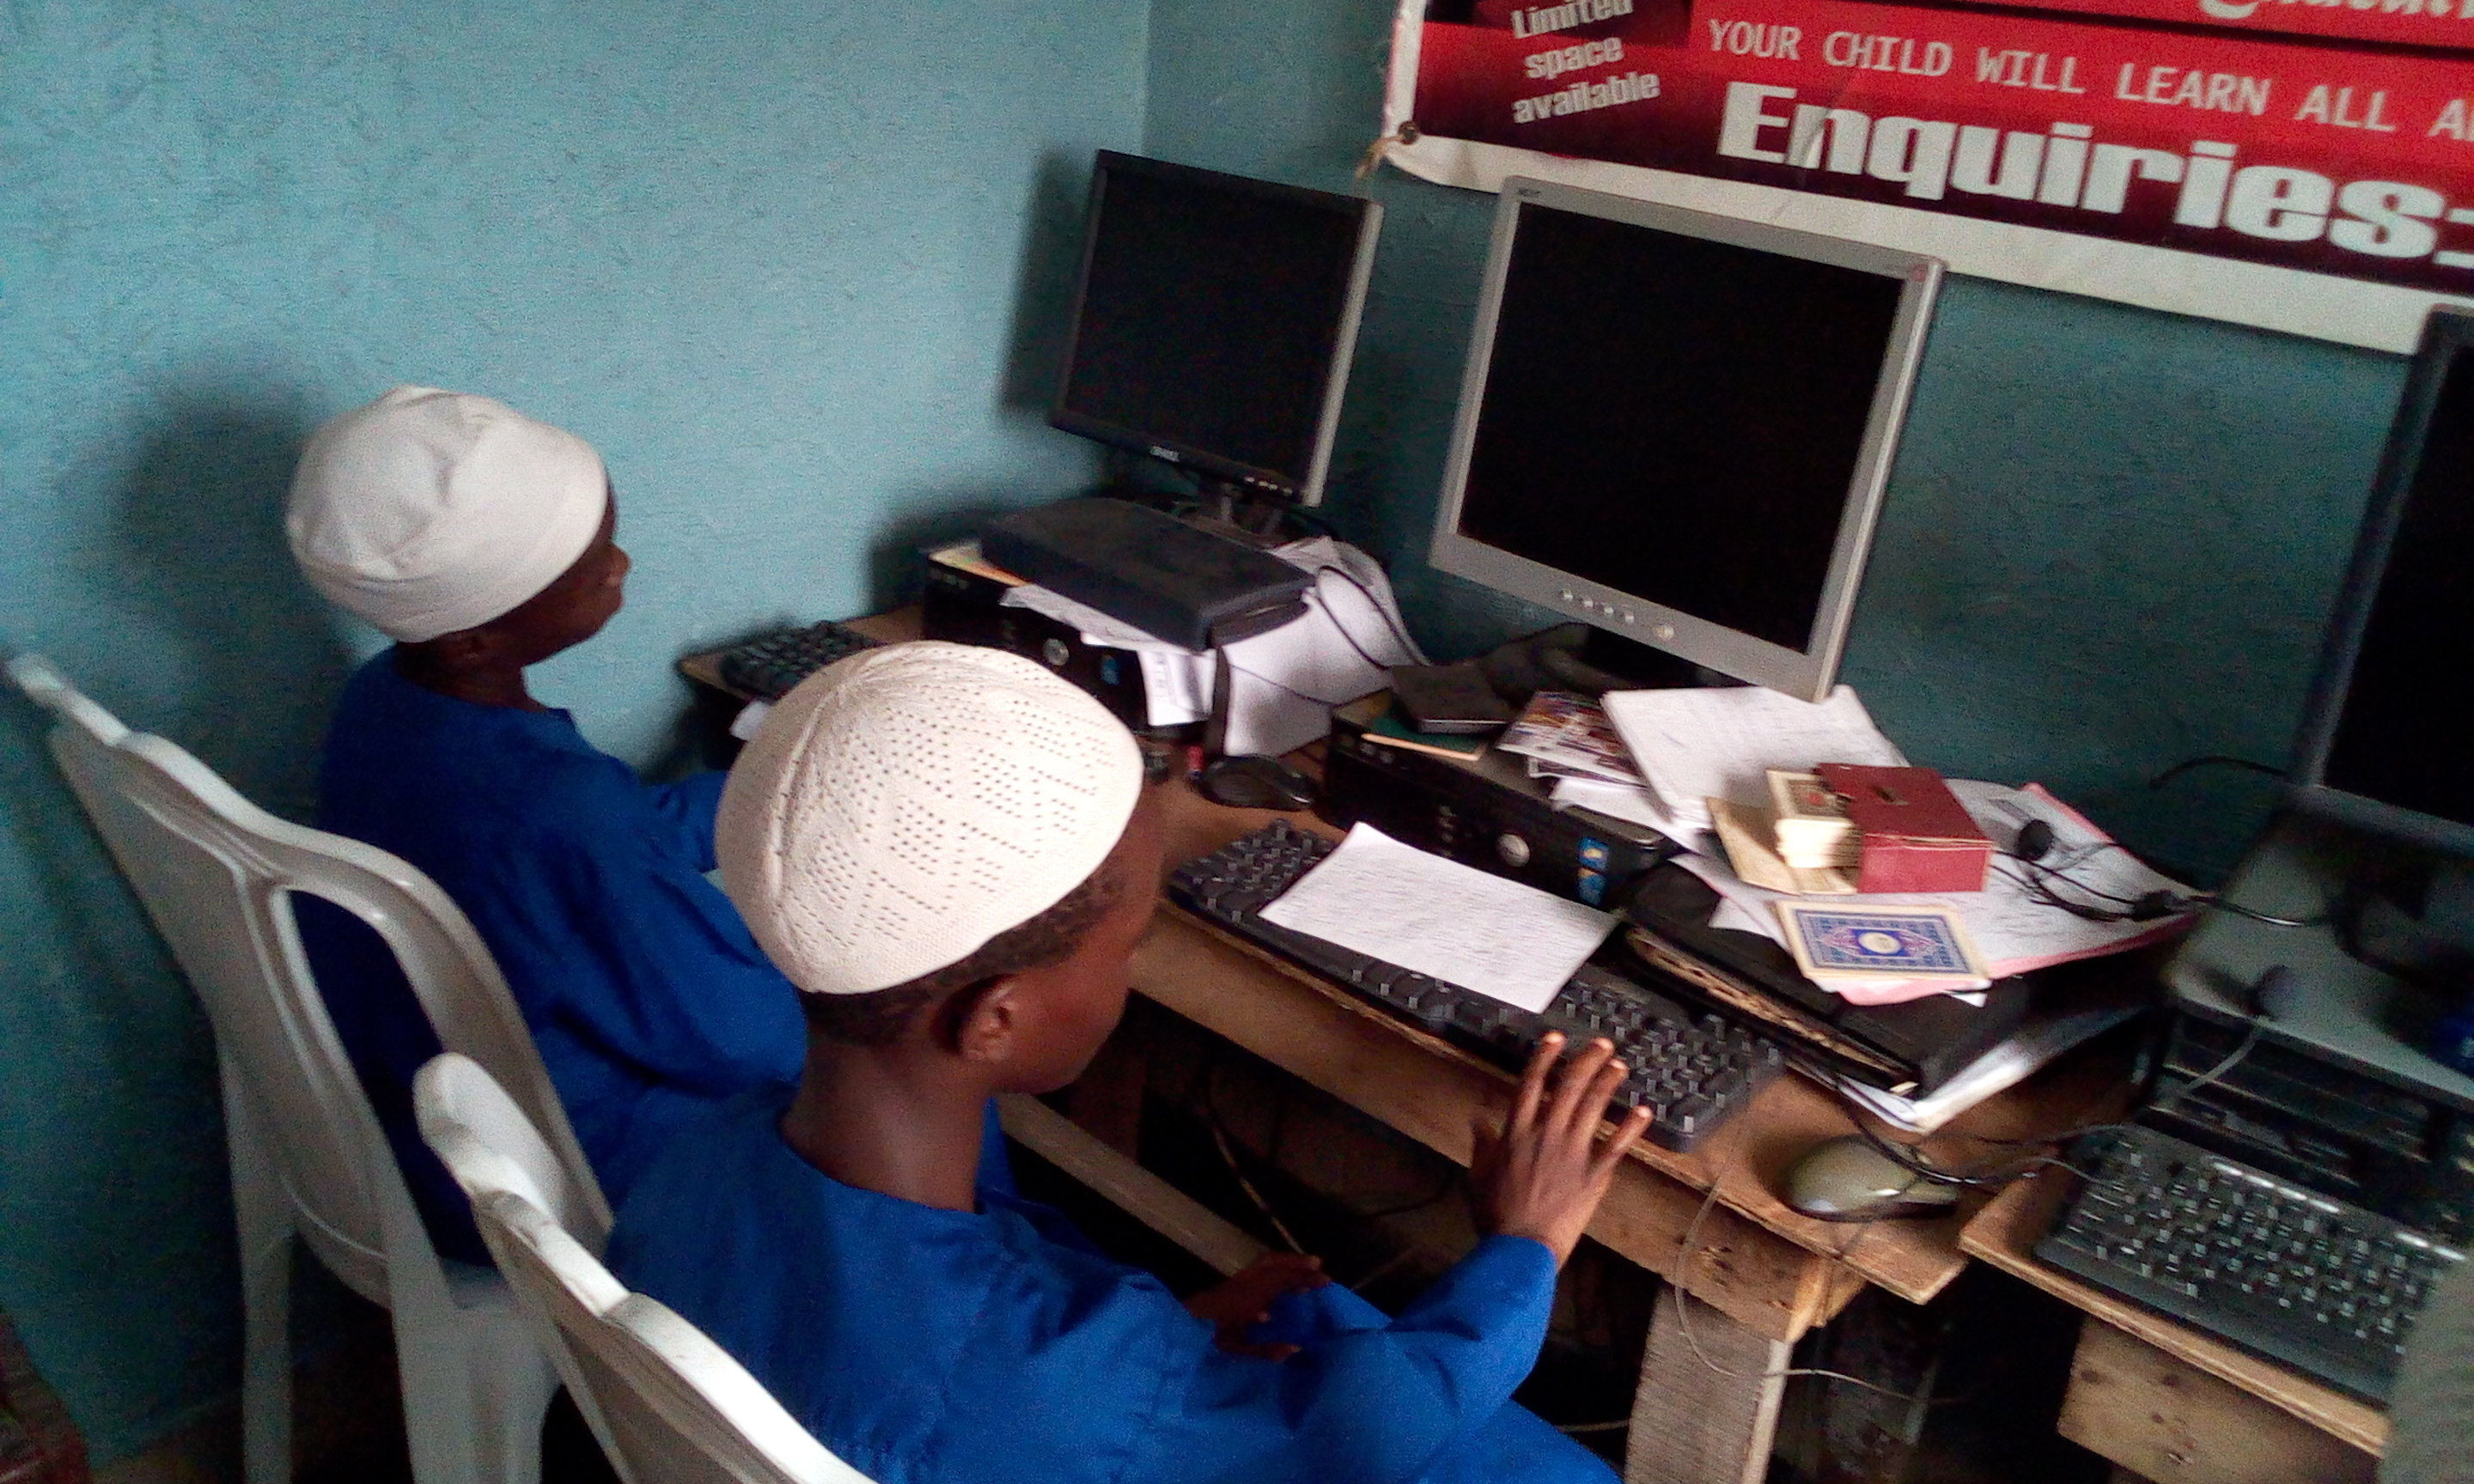 ABD RAHMAN AKINTUNDE AND HABEEB ADEWALE ARE IN COMPUTER LAB IN THE HOSTEL